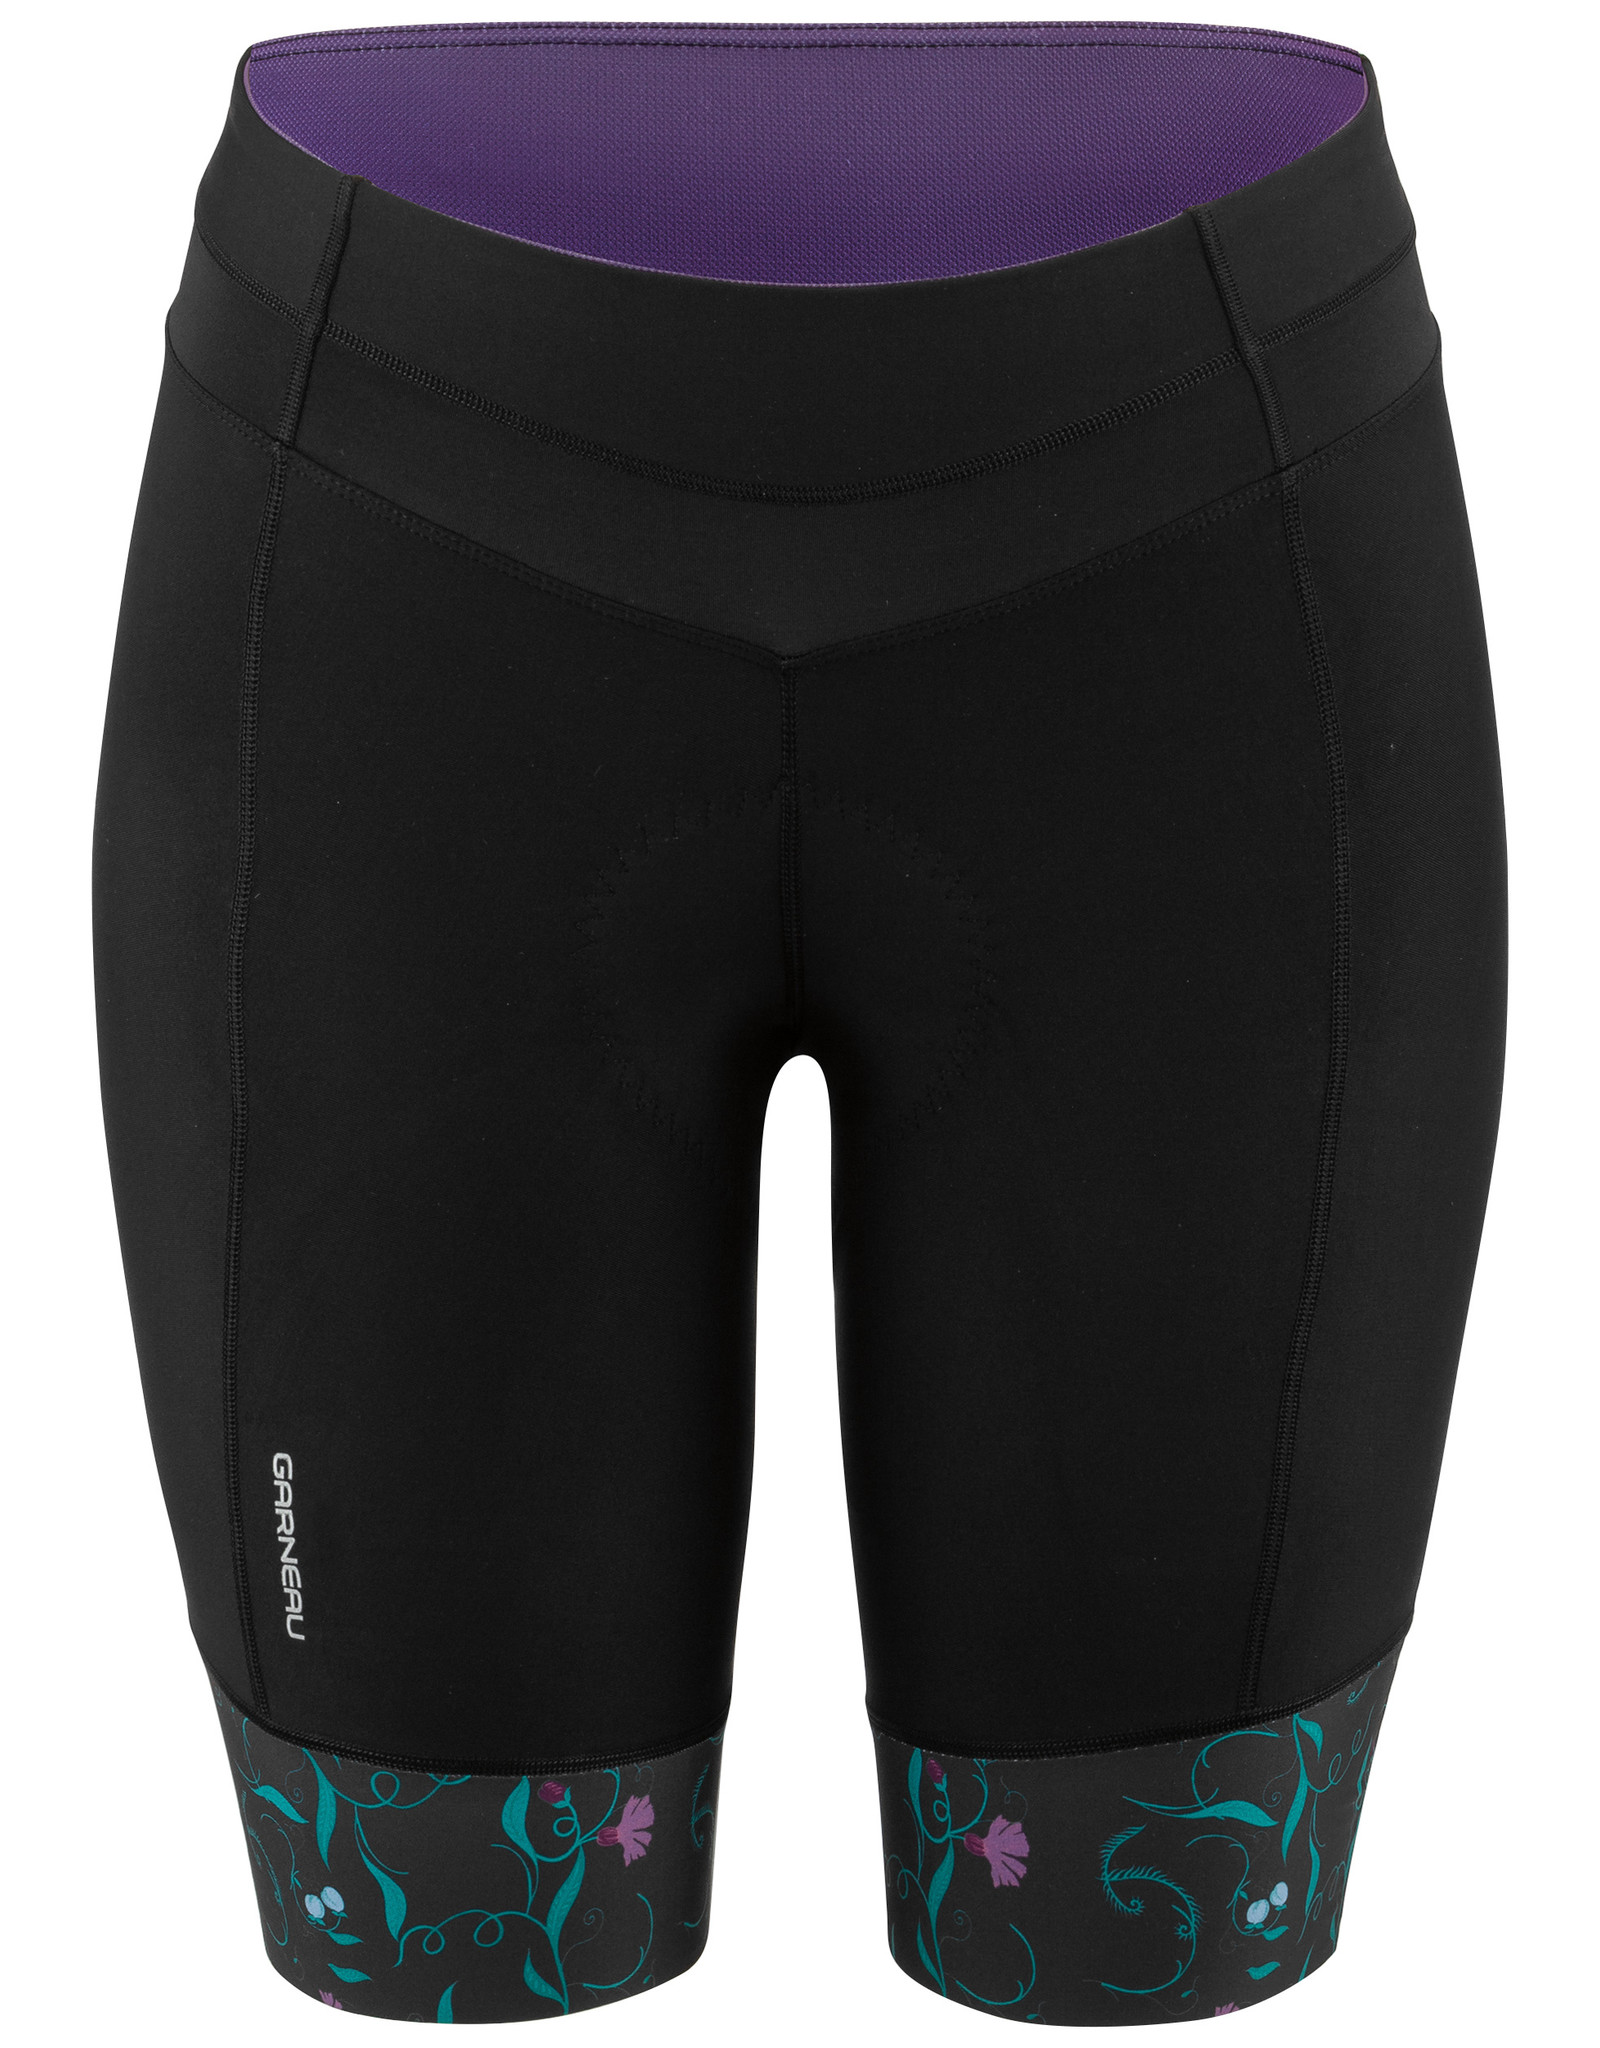 Garneau Garneau Cuissard Femme Neo Power Art Motion